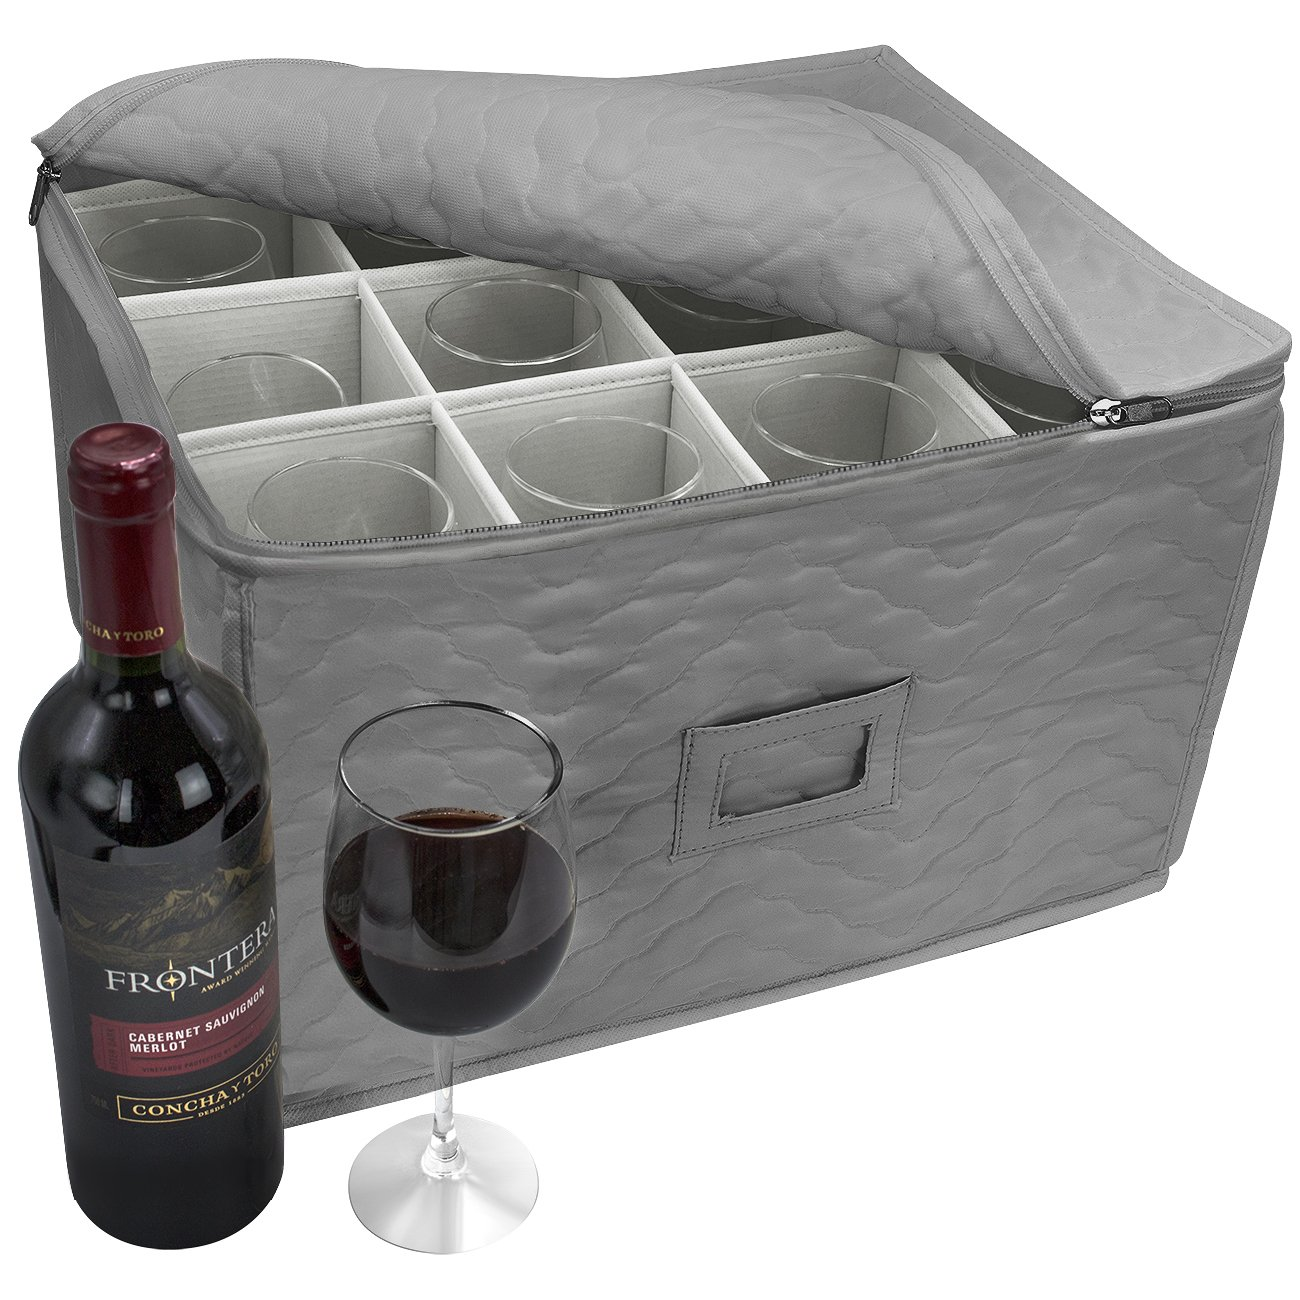 Sorbus Stemware Storage Chest - Deluxe Quilted Case with Dividers - Service for 12 - Great for Protecting or Transporting Wine Glasses, Champagne Flutes, Goblets, and more (Gray)